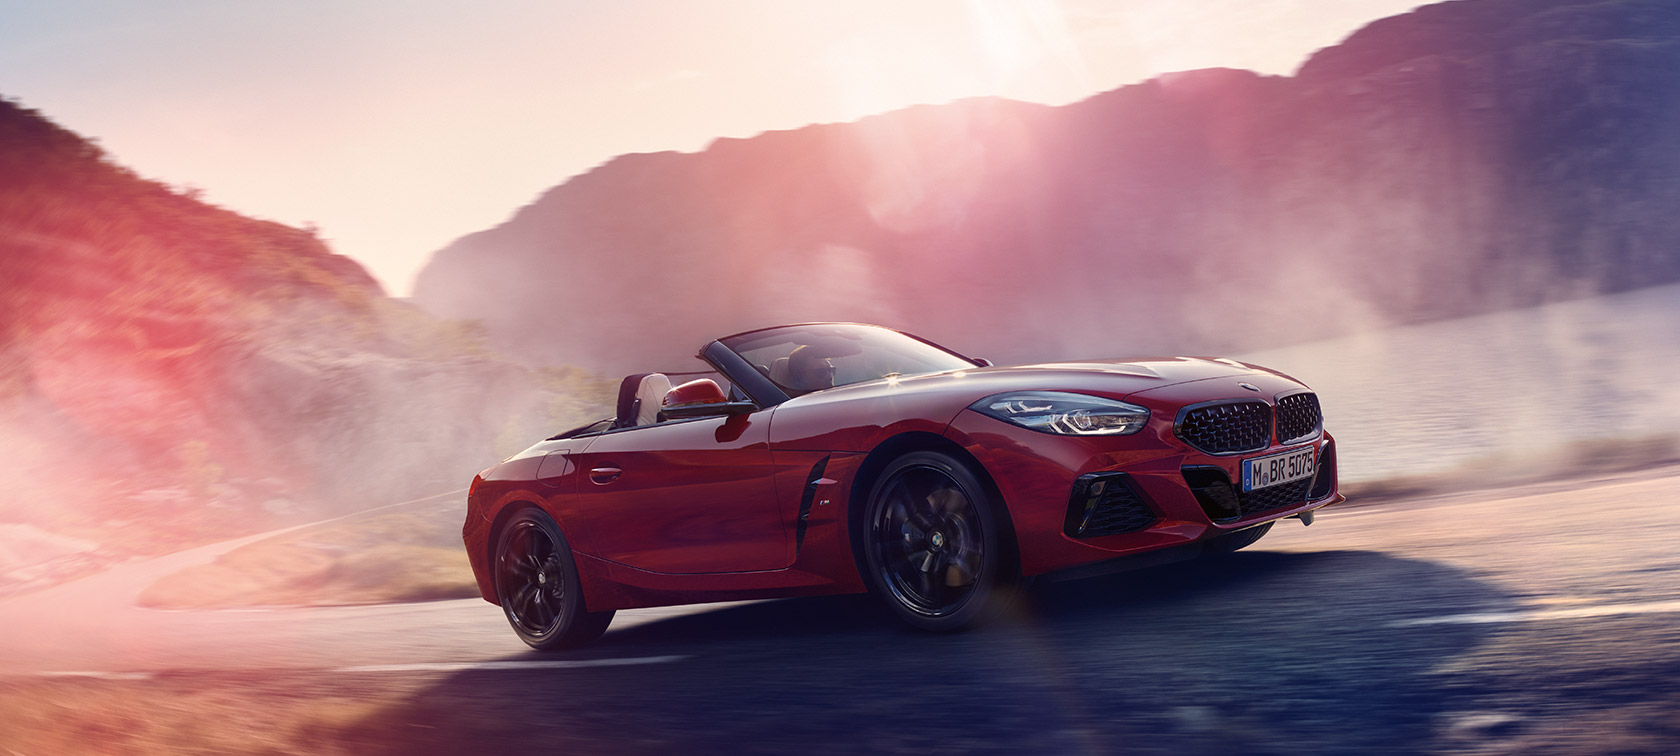 BMW Z4 Roadster en ascenso